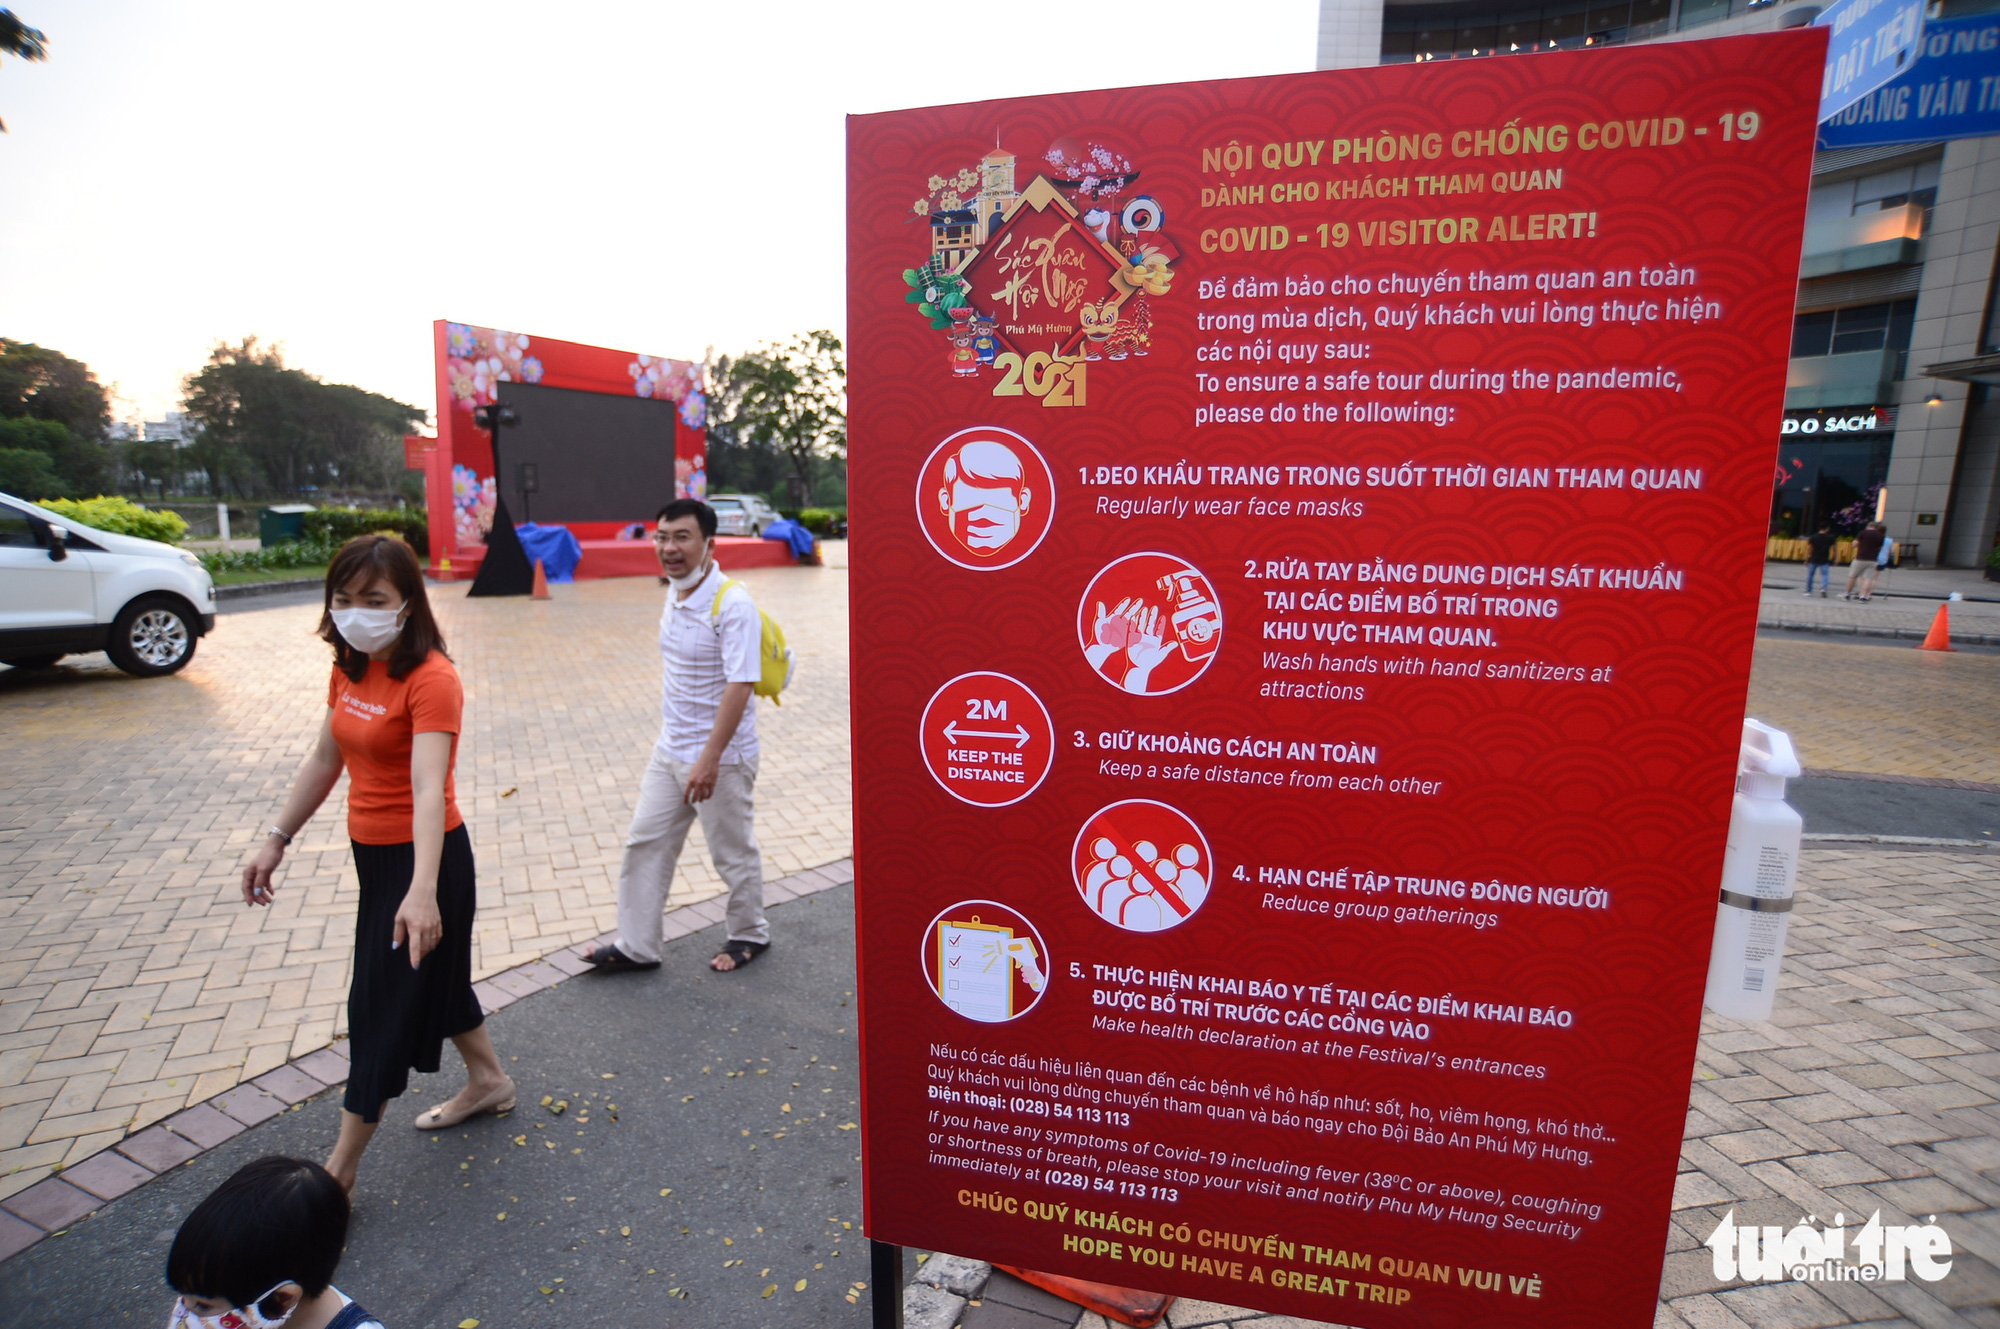 A board of COVID-19 prevention and control rules is set up at the Phu My Hung Spring Flowers Festival2021 in District 7, Ho Chi Minh City, February 4, 2021. Photo: Quang Dinh / Tuoi Tre